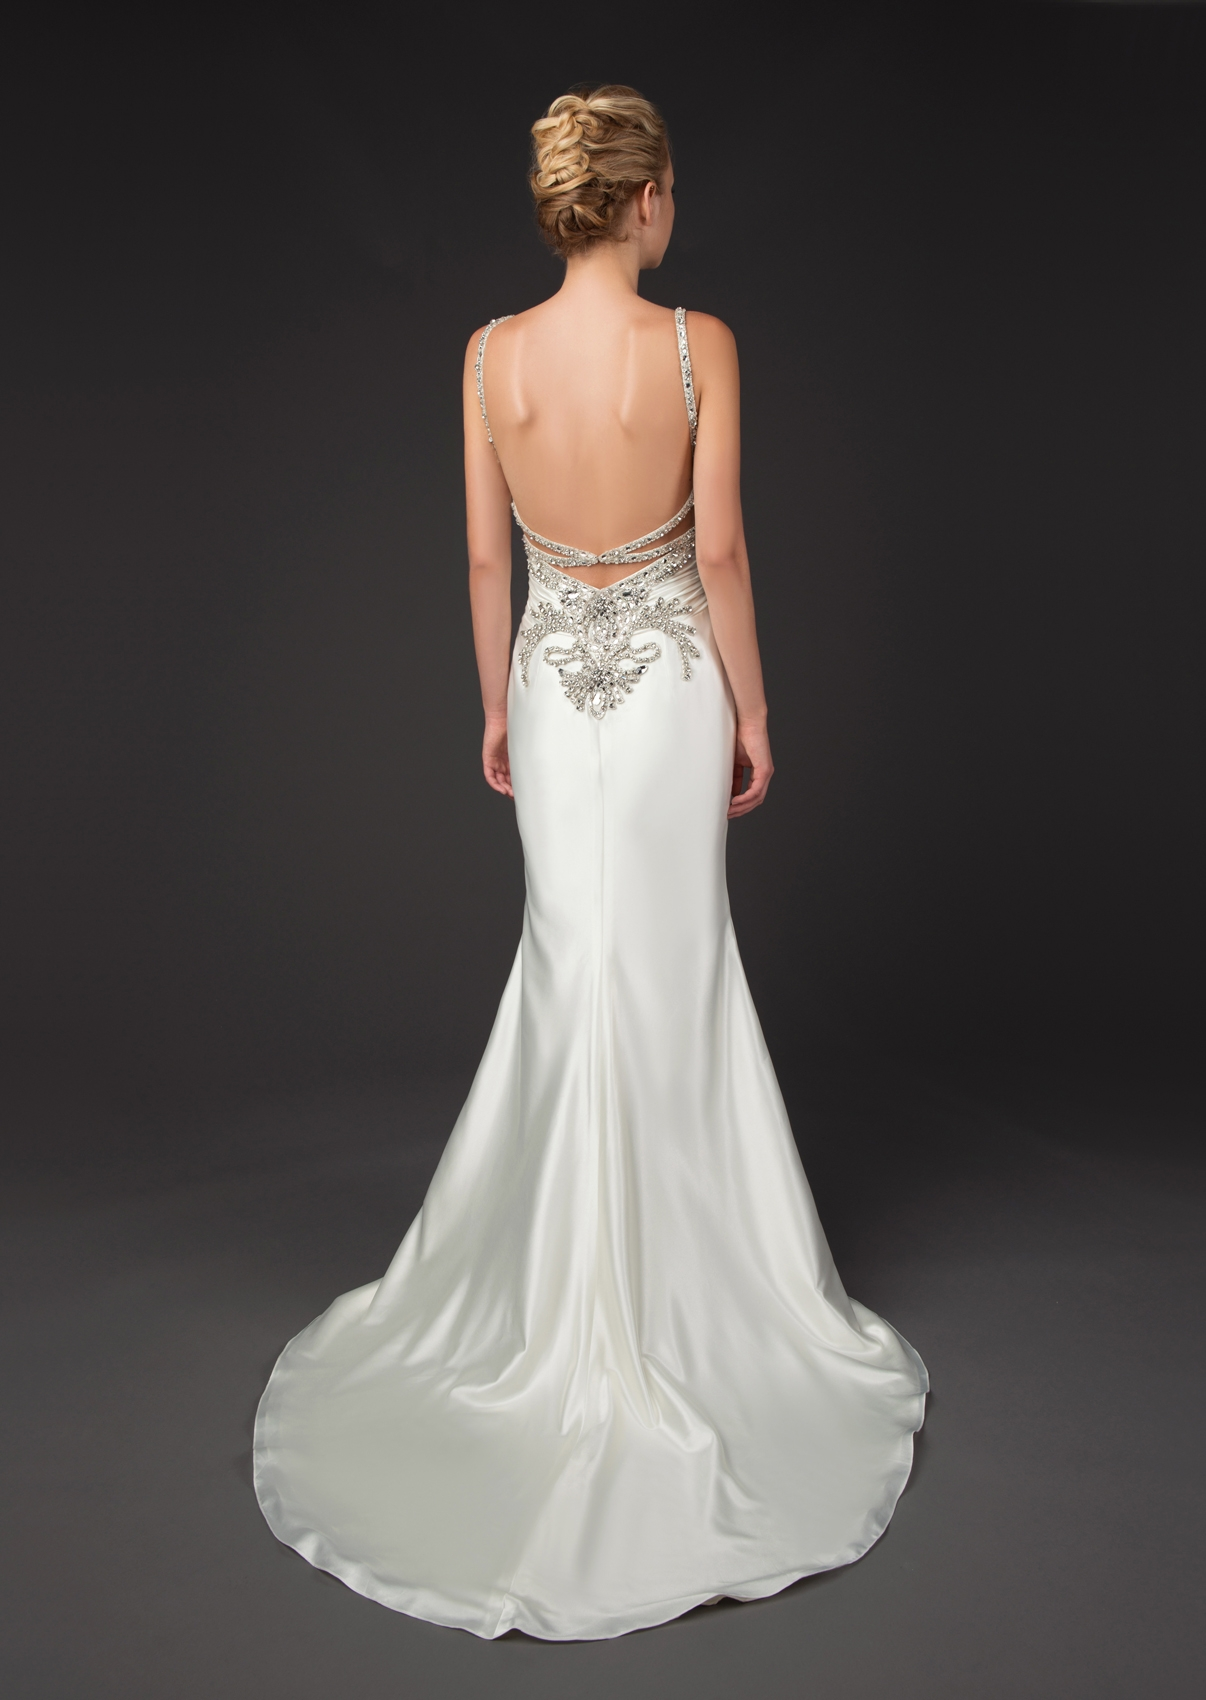 winnie-couture-wedding-dresses-fall-2014-diamond-label-collection-14-01202014